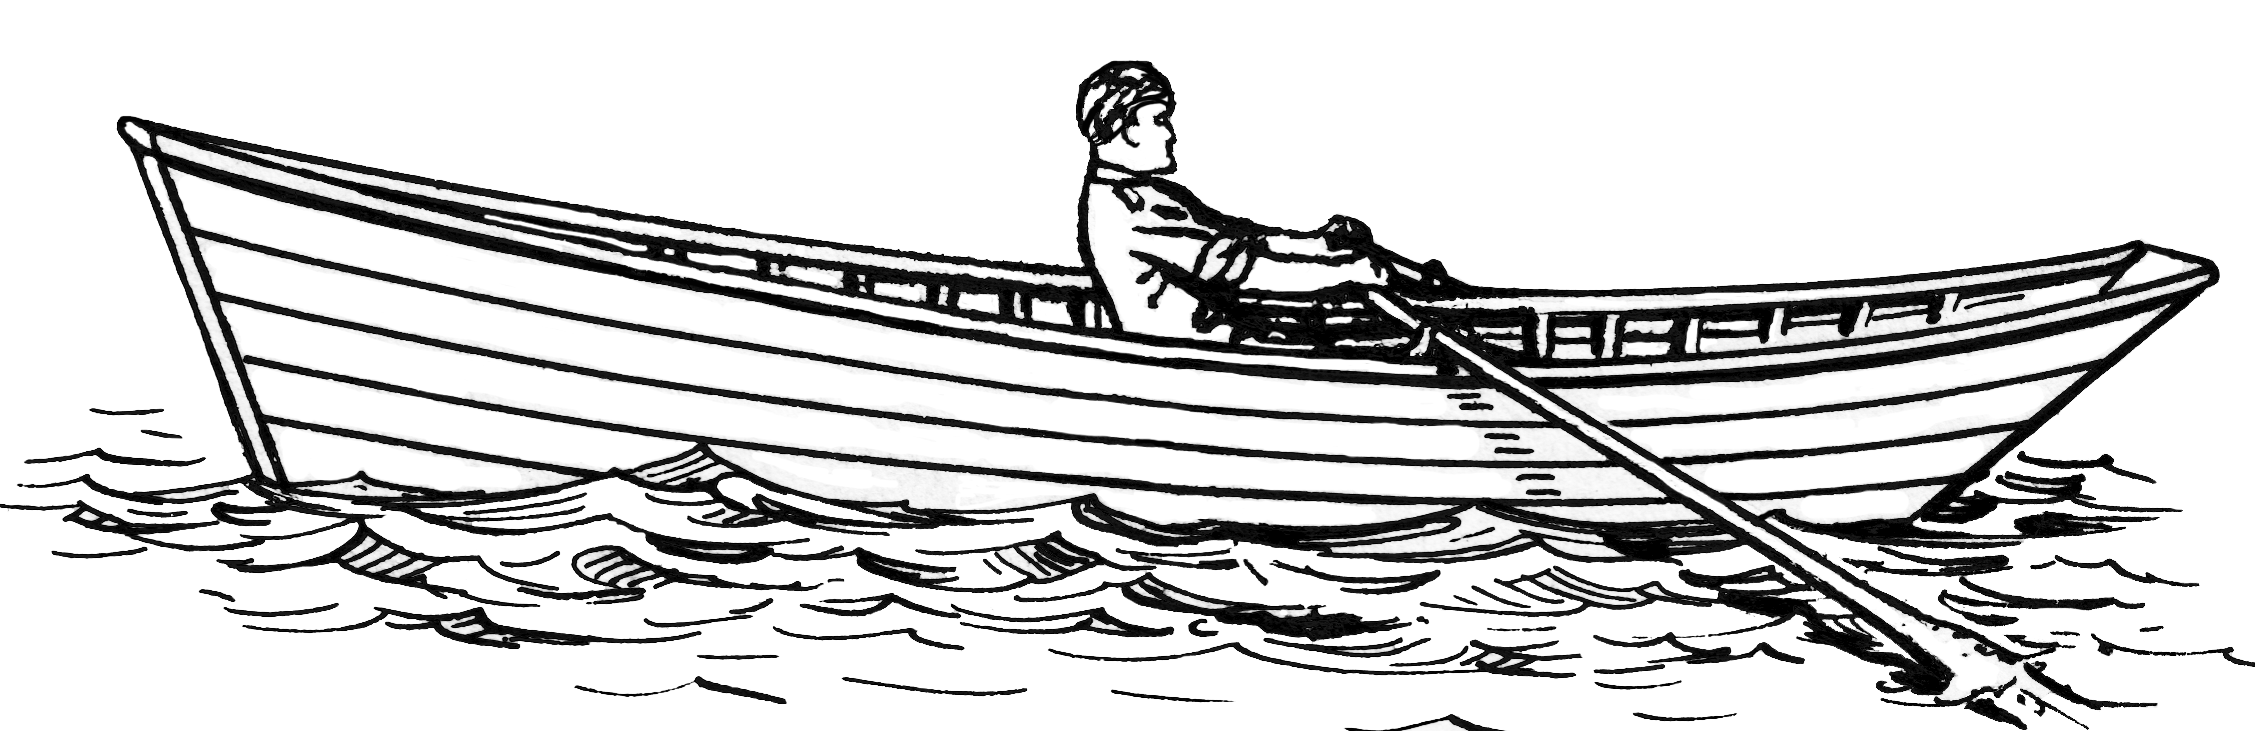 Line Drawing Boat : Dinghy or dory db